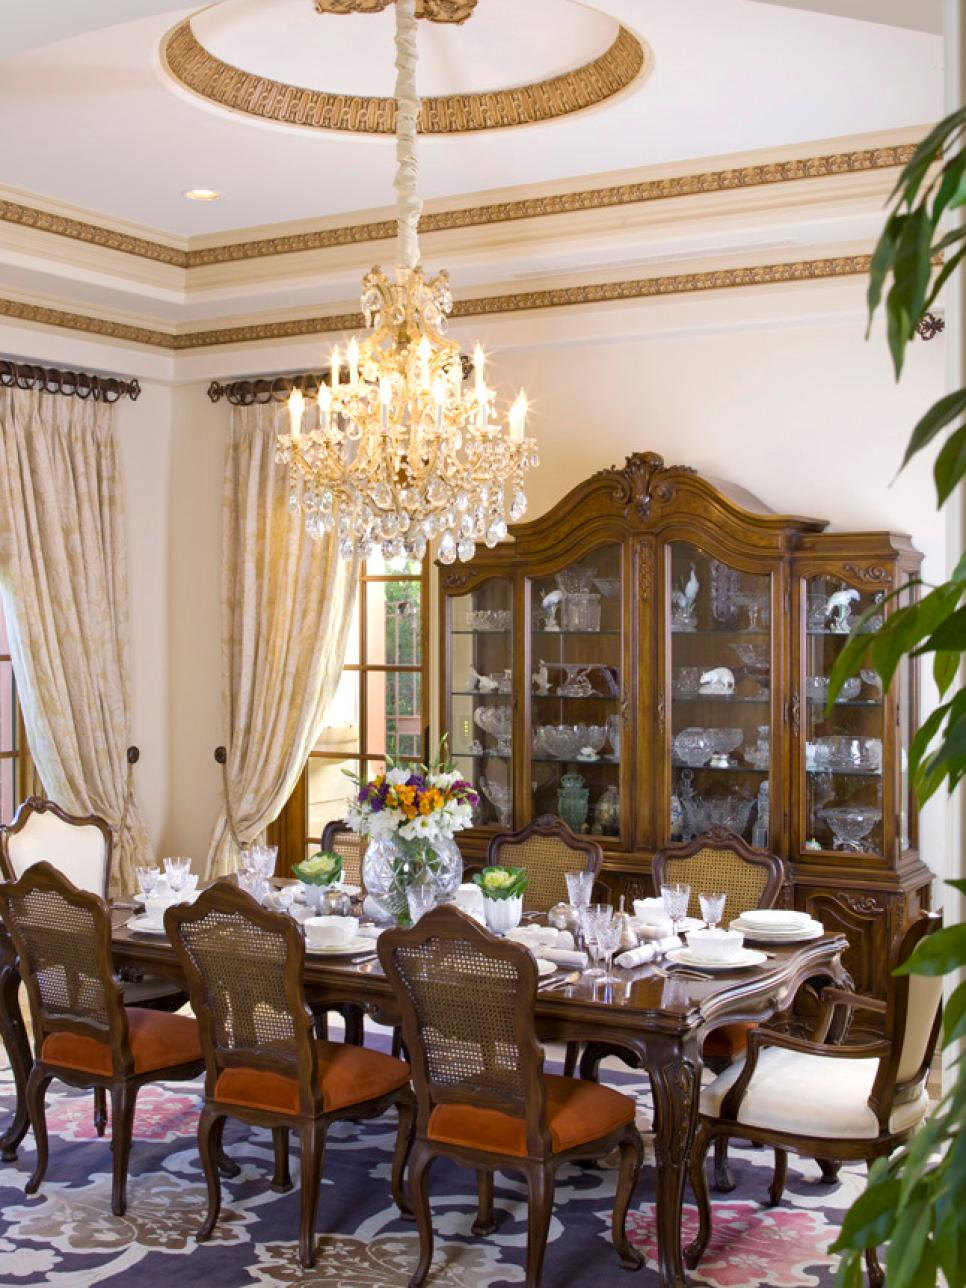 8 elegant victorian style dining room designs hgtv for Elegant dining room ideas